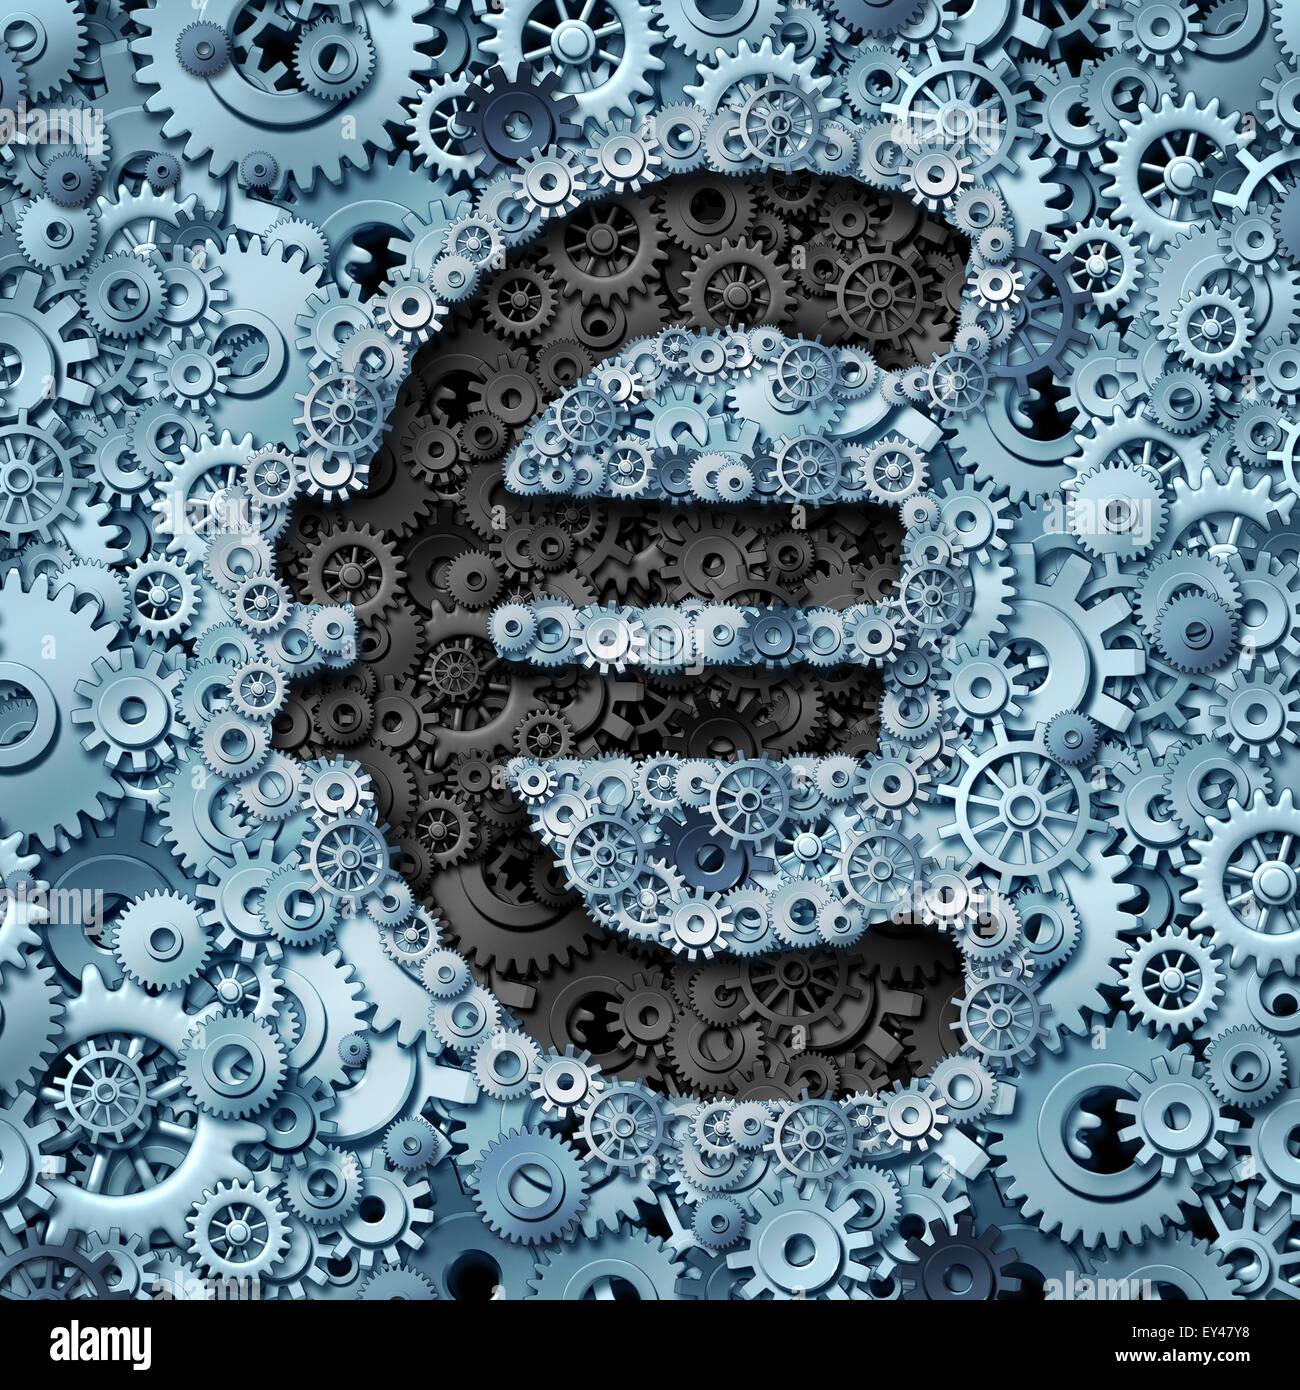 Euro banking industry currency machine as a financial business concept with the money icon from the European union - Stock Image